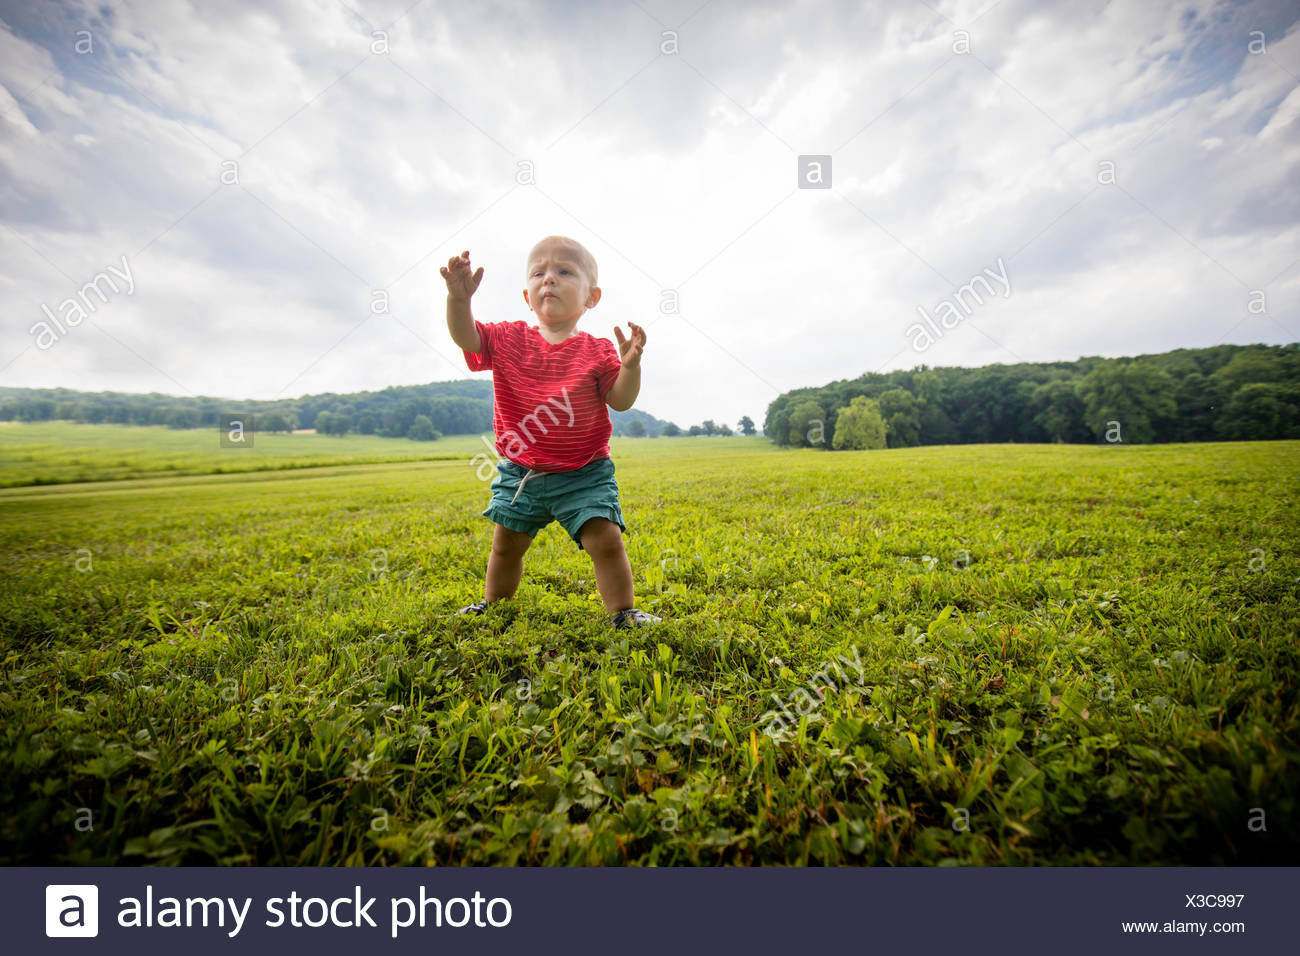 Baby boy toddling in grassy  rural field - Stock Image